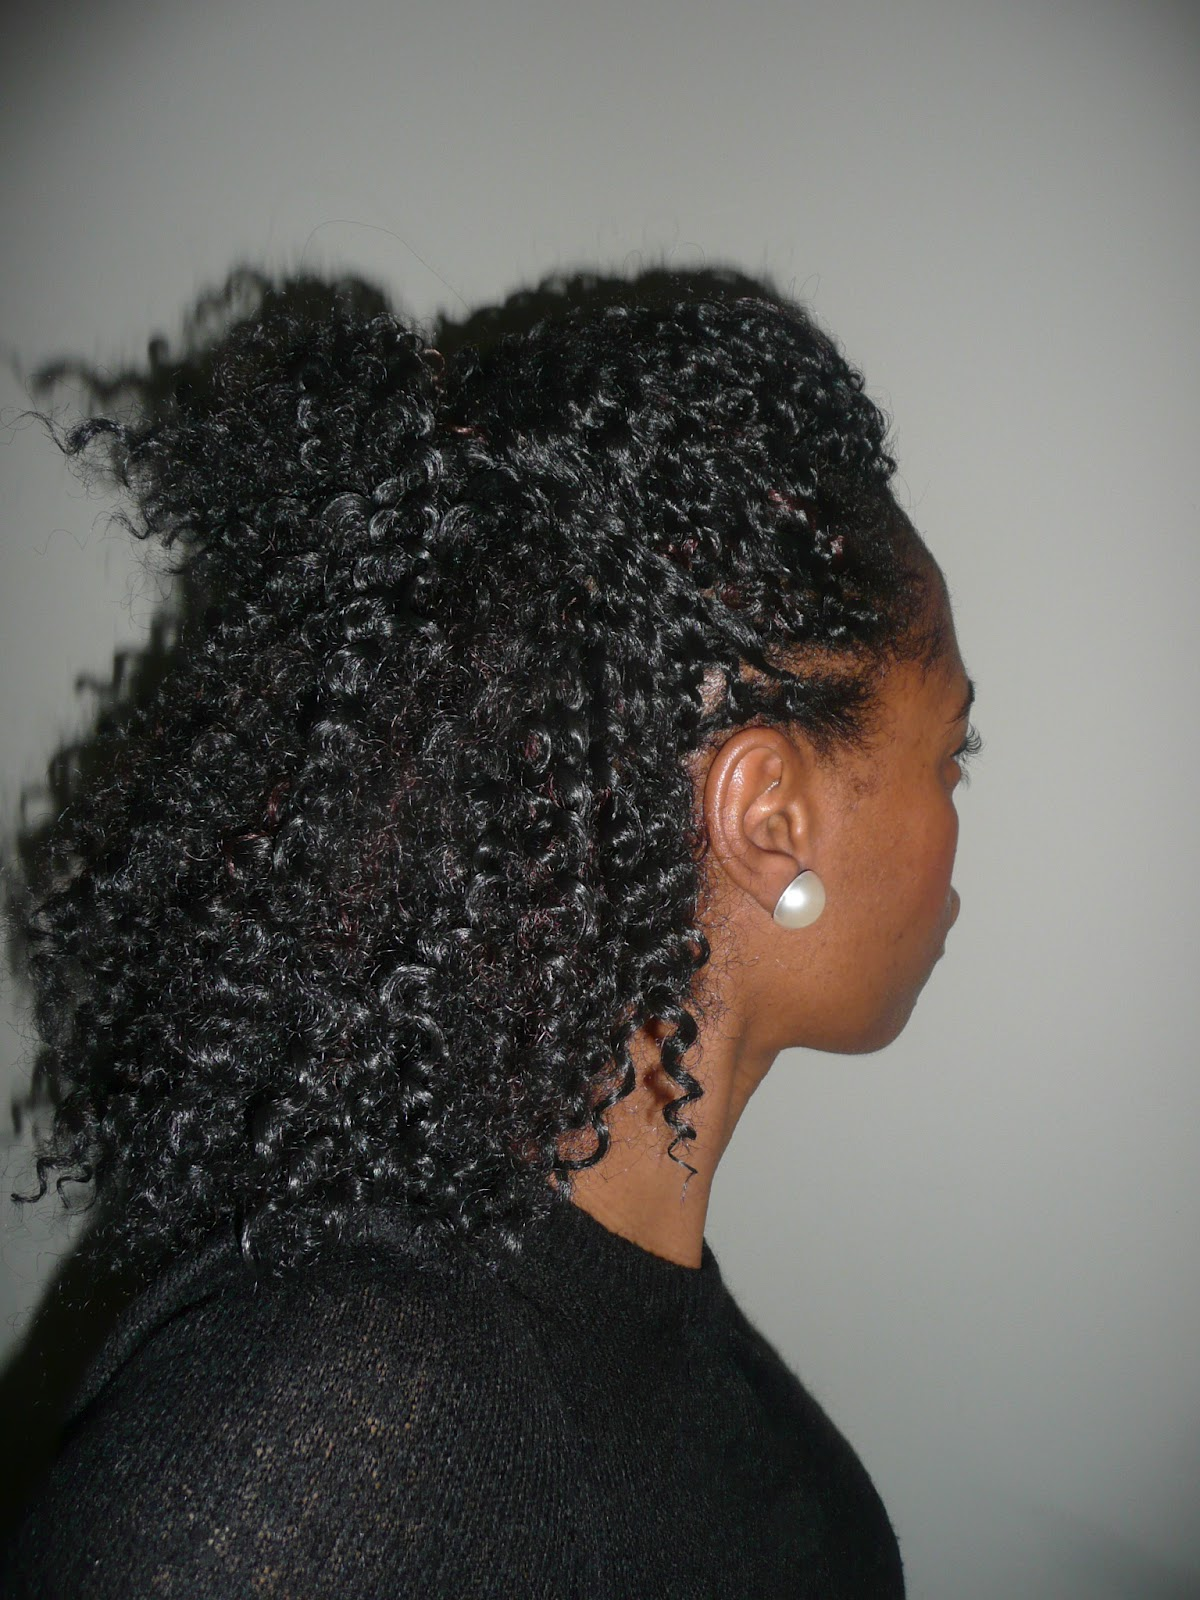 ... am wearing today these crochet latch hook braids are very versatile